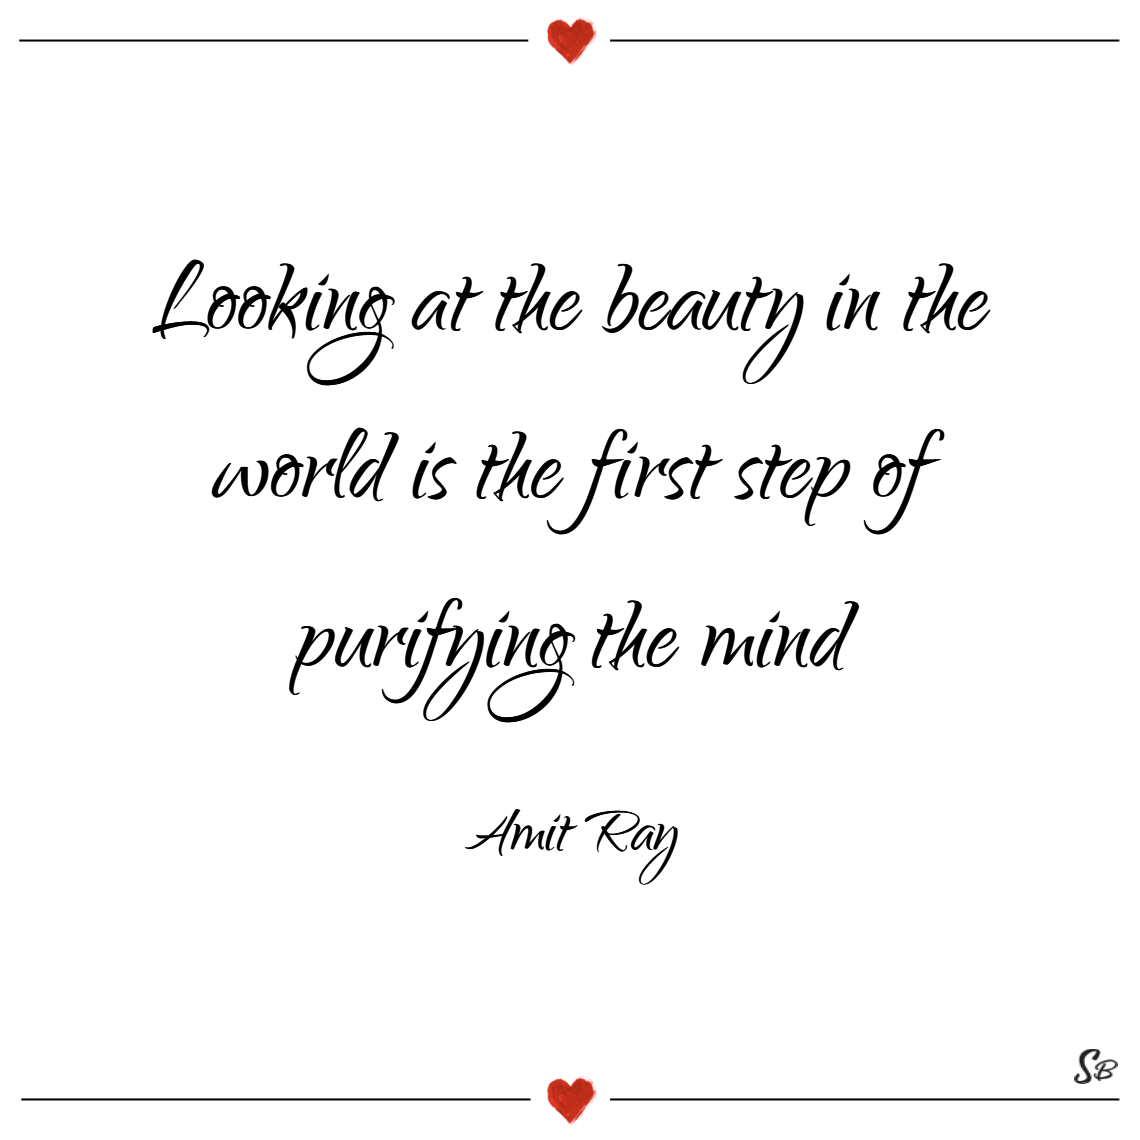 Looking at the beauty in the world is the first step of purifying the mind. – amit ray Beauty quotes